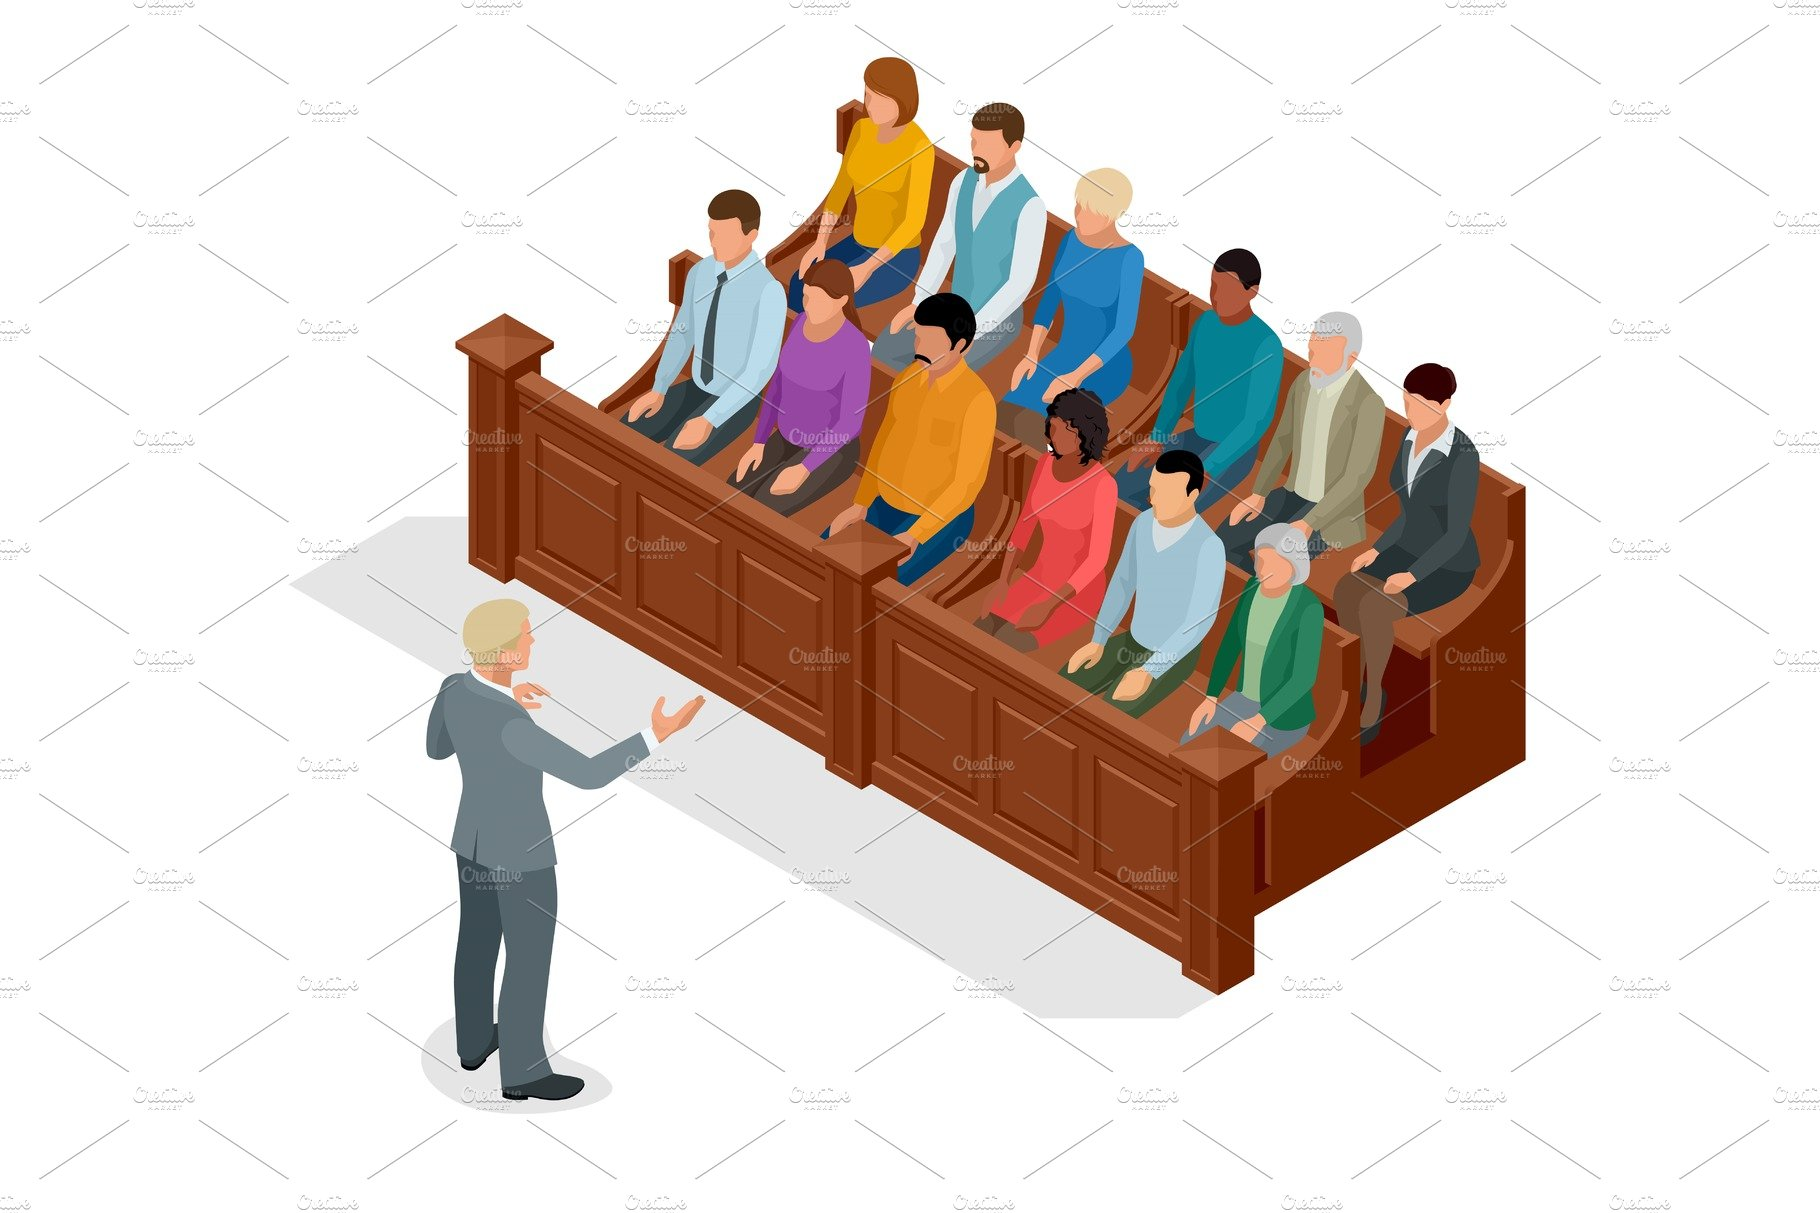 Isometric Symbol Of Law And Justice In The Courtroom Vector